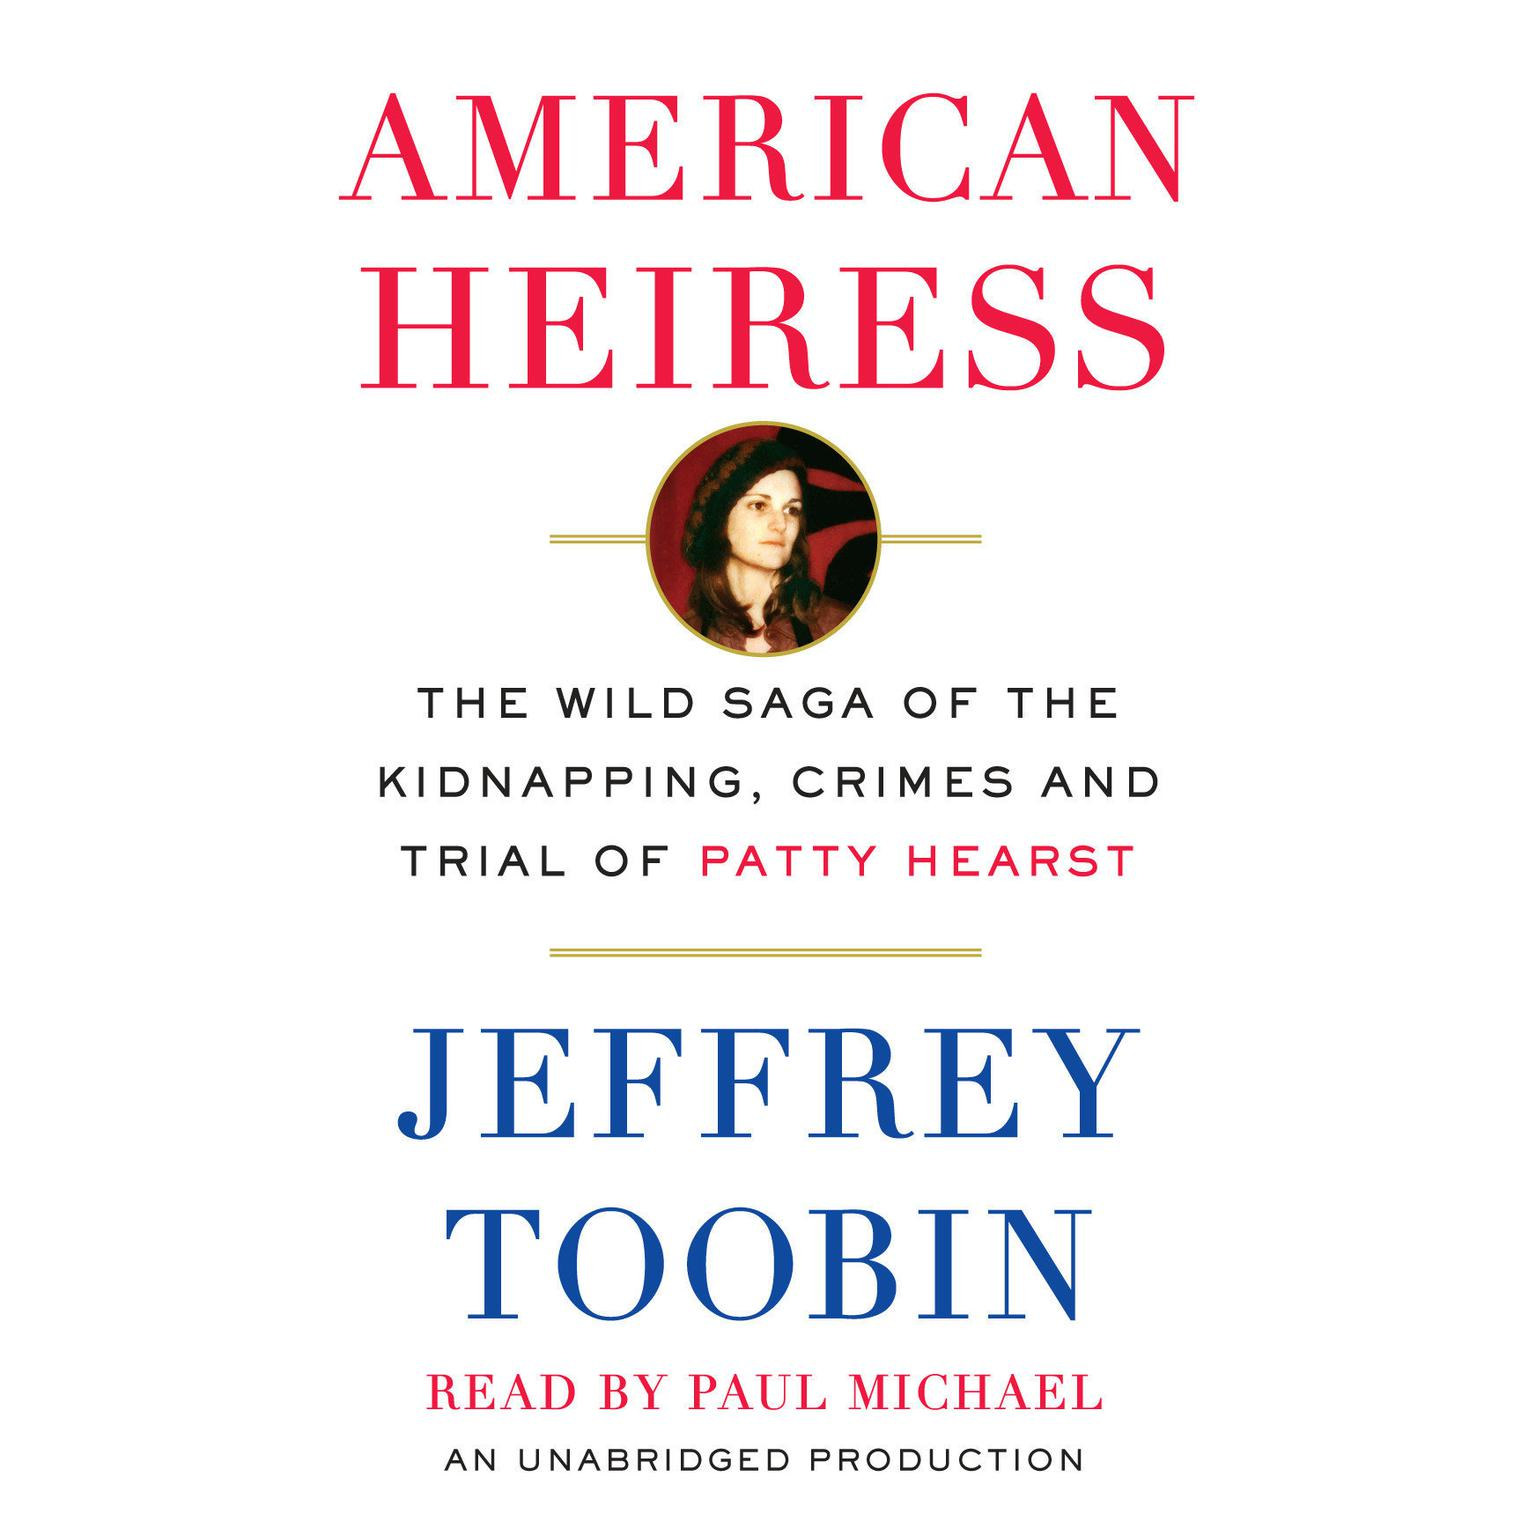 Printable American Heiress: The Wild Saga of the Kidnapping, Crimes and Trial of Patty Hearst Audiobook Cover Art